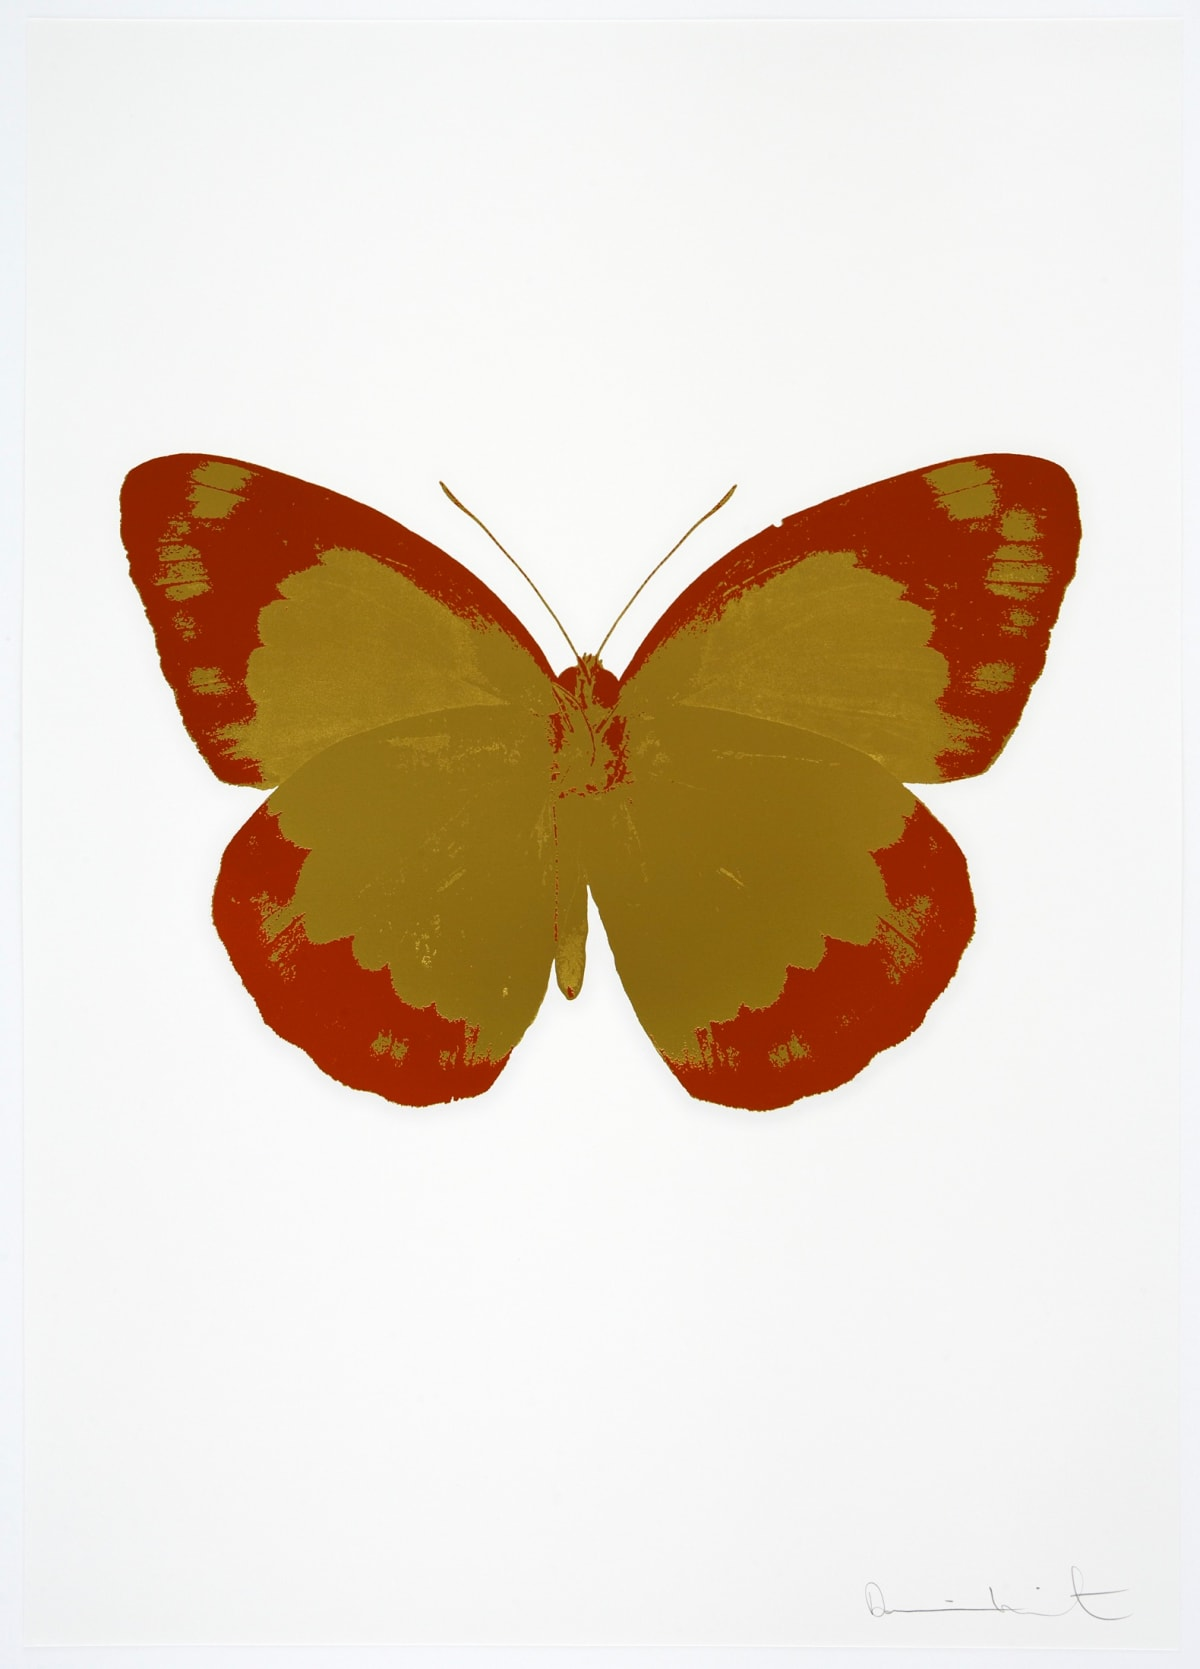 Damien Hirst The Souls II - Oriental Gold/Prairie Copper/Blind Impression, 2010 2 colour foil block on 300gsm Arches 88 archival paper. Signed and numbered. Published by Paul Stolper and Other Criteria 72 x 51cm OC7888 / 658-71 Edition of 15